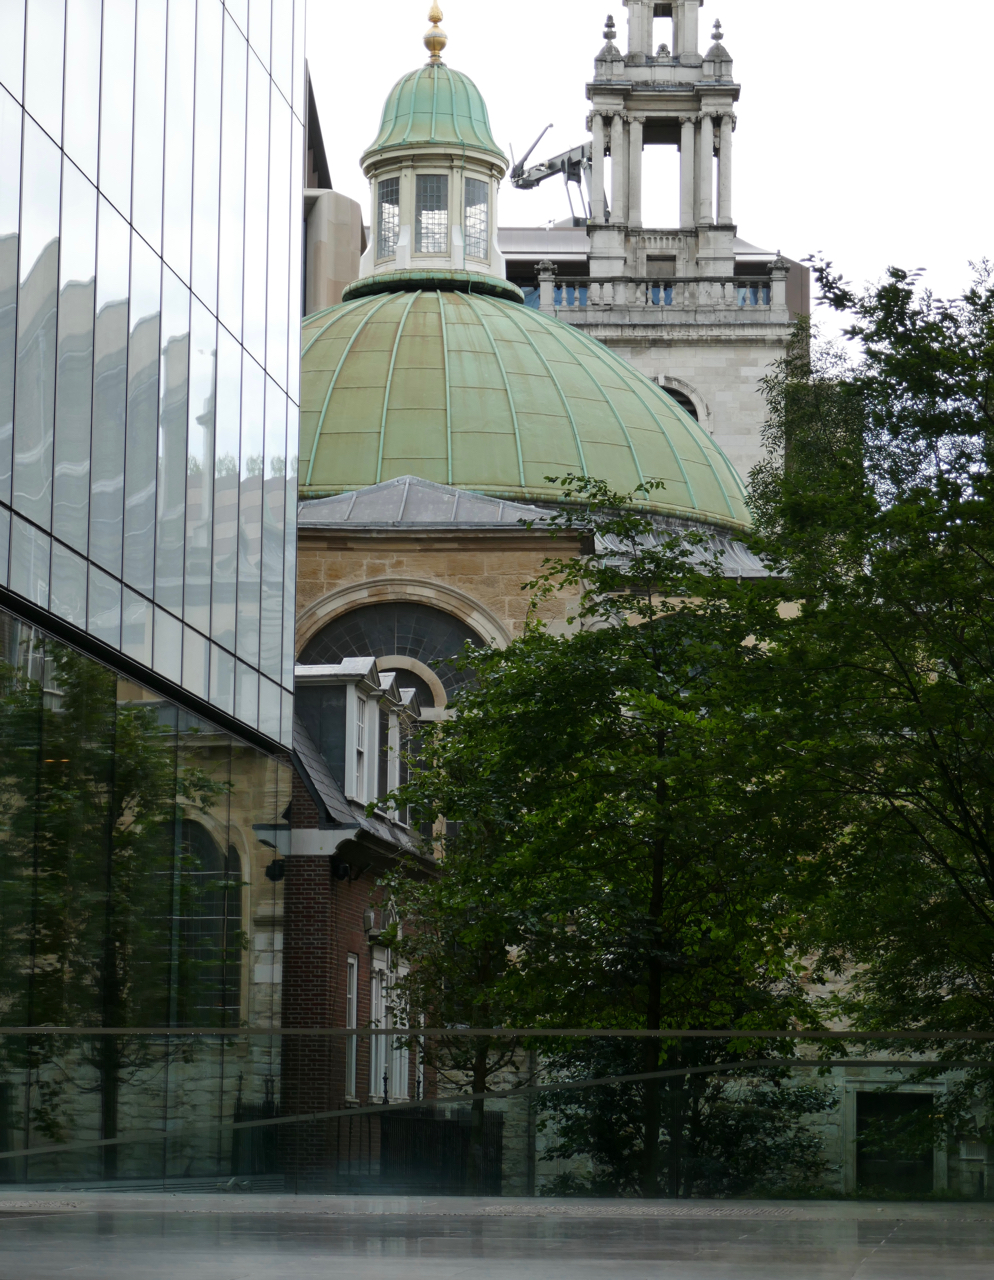 Dome of St Stephen Walbrook Church